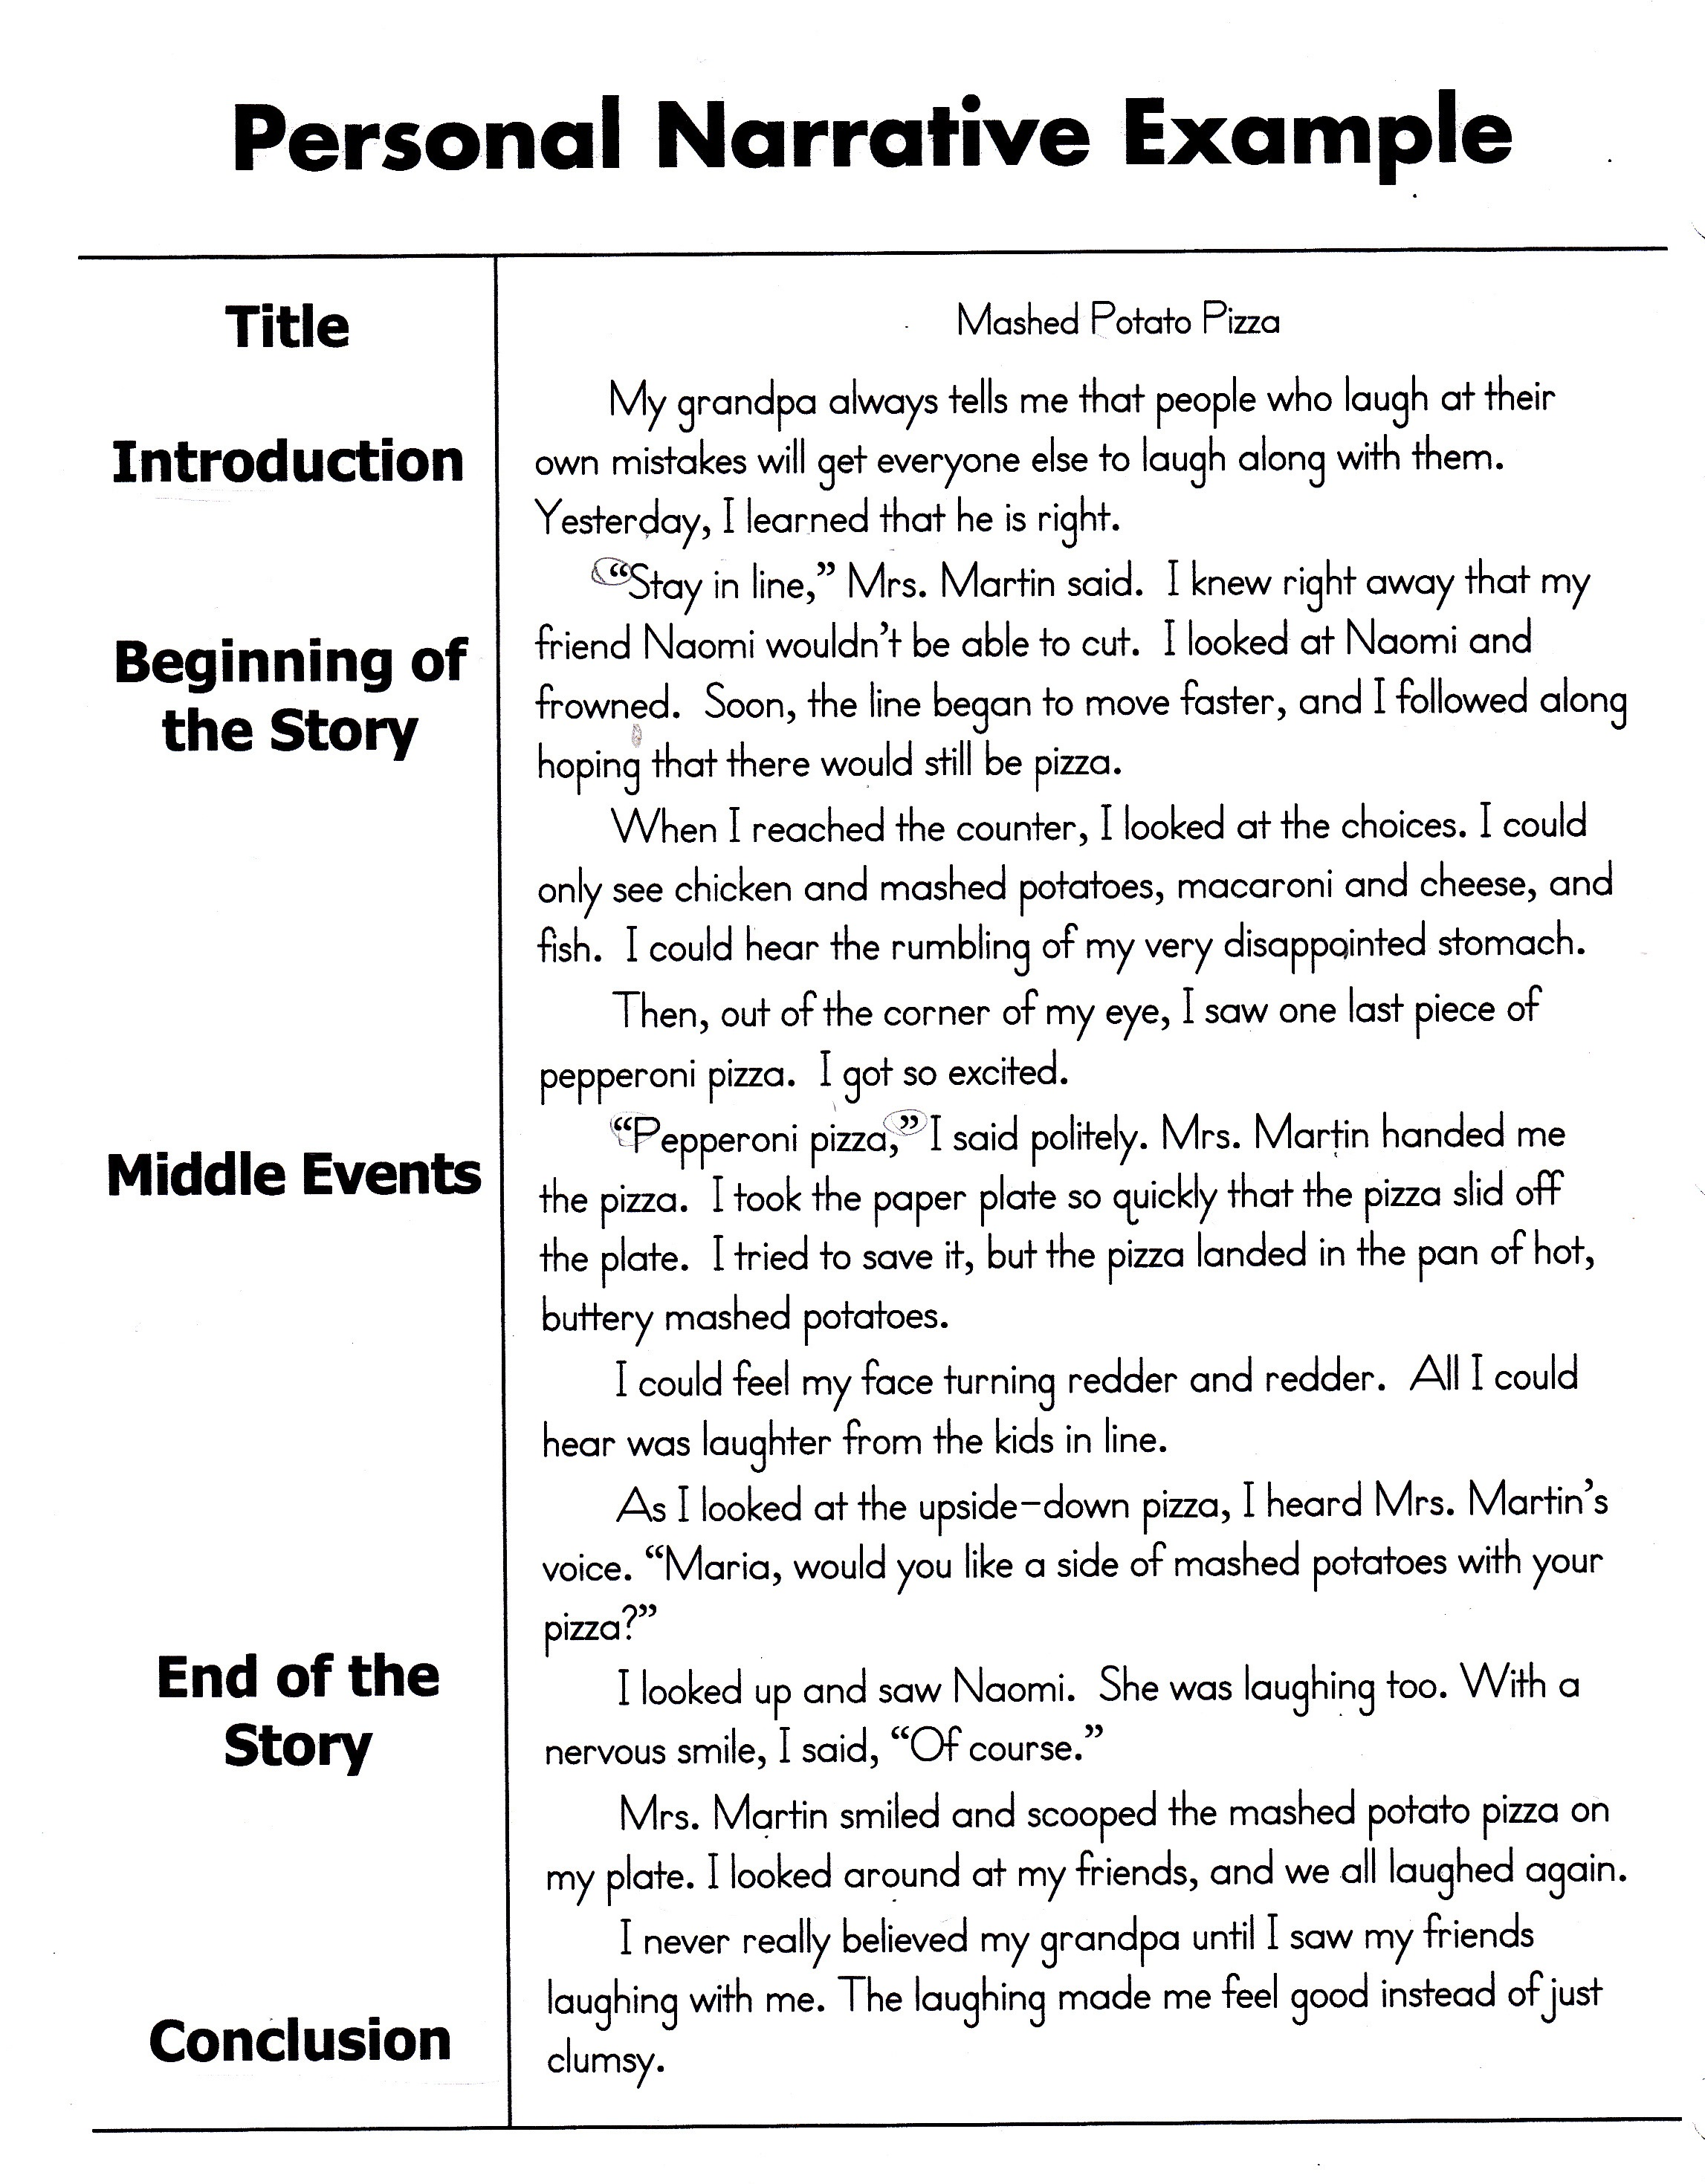 008 Narrative Essay Outline Example Impressive Doc Sample Full